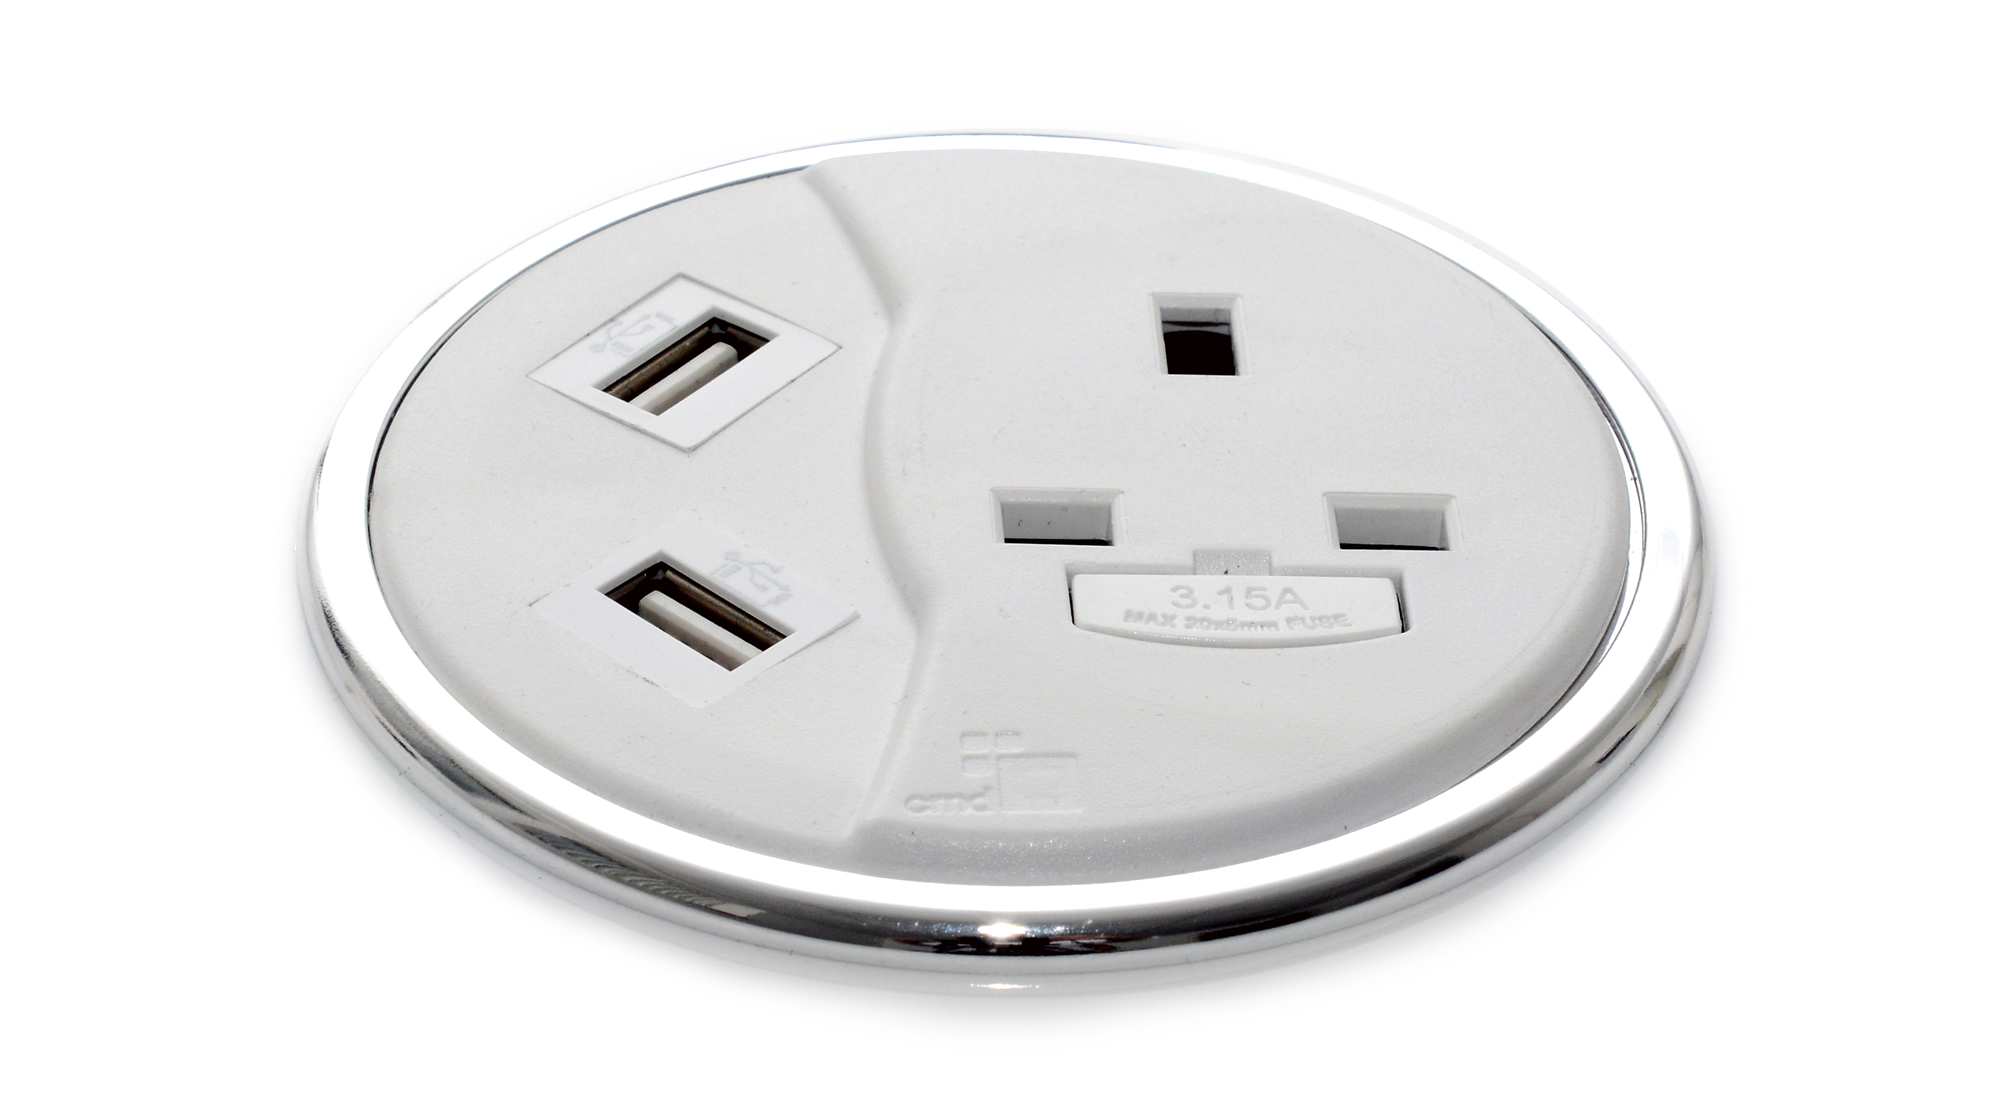 White Porthole II power and USB charging module